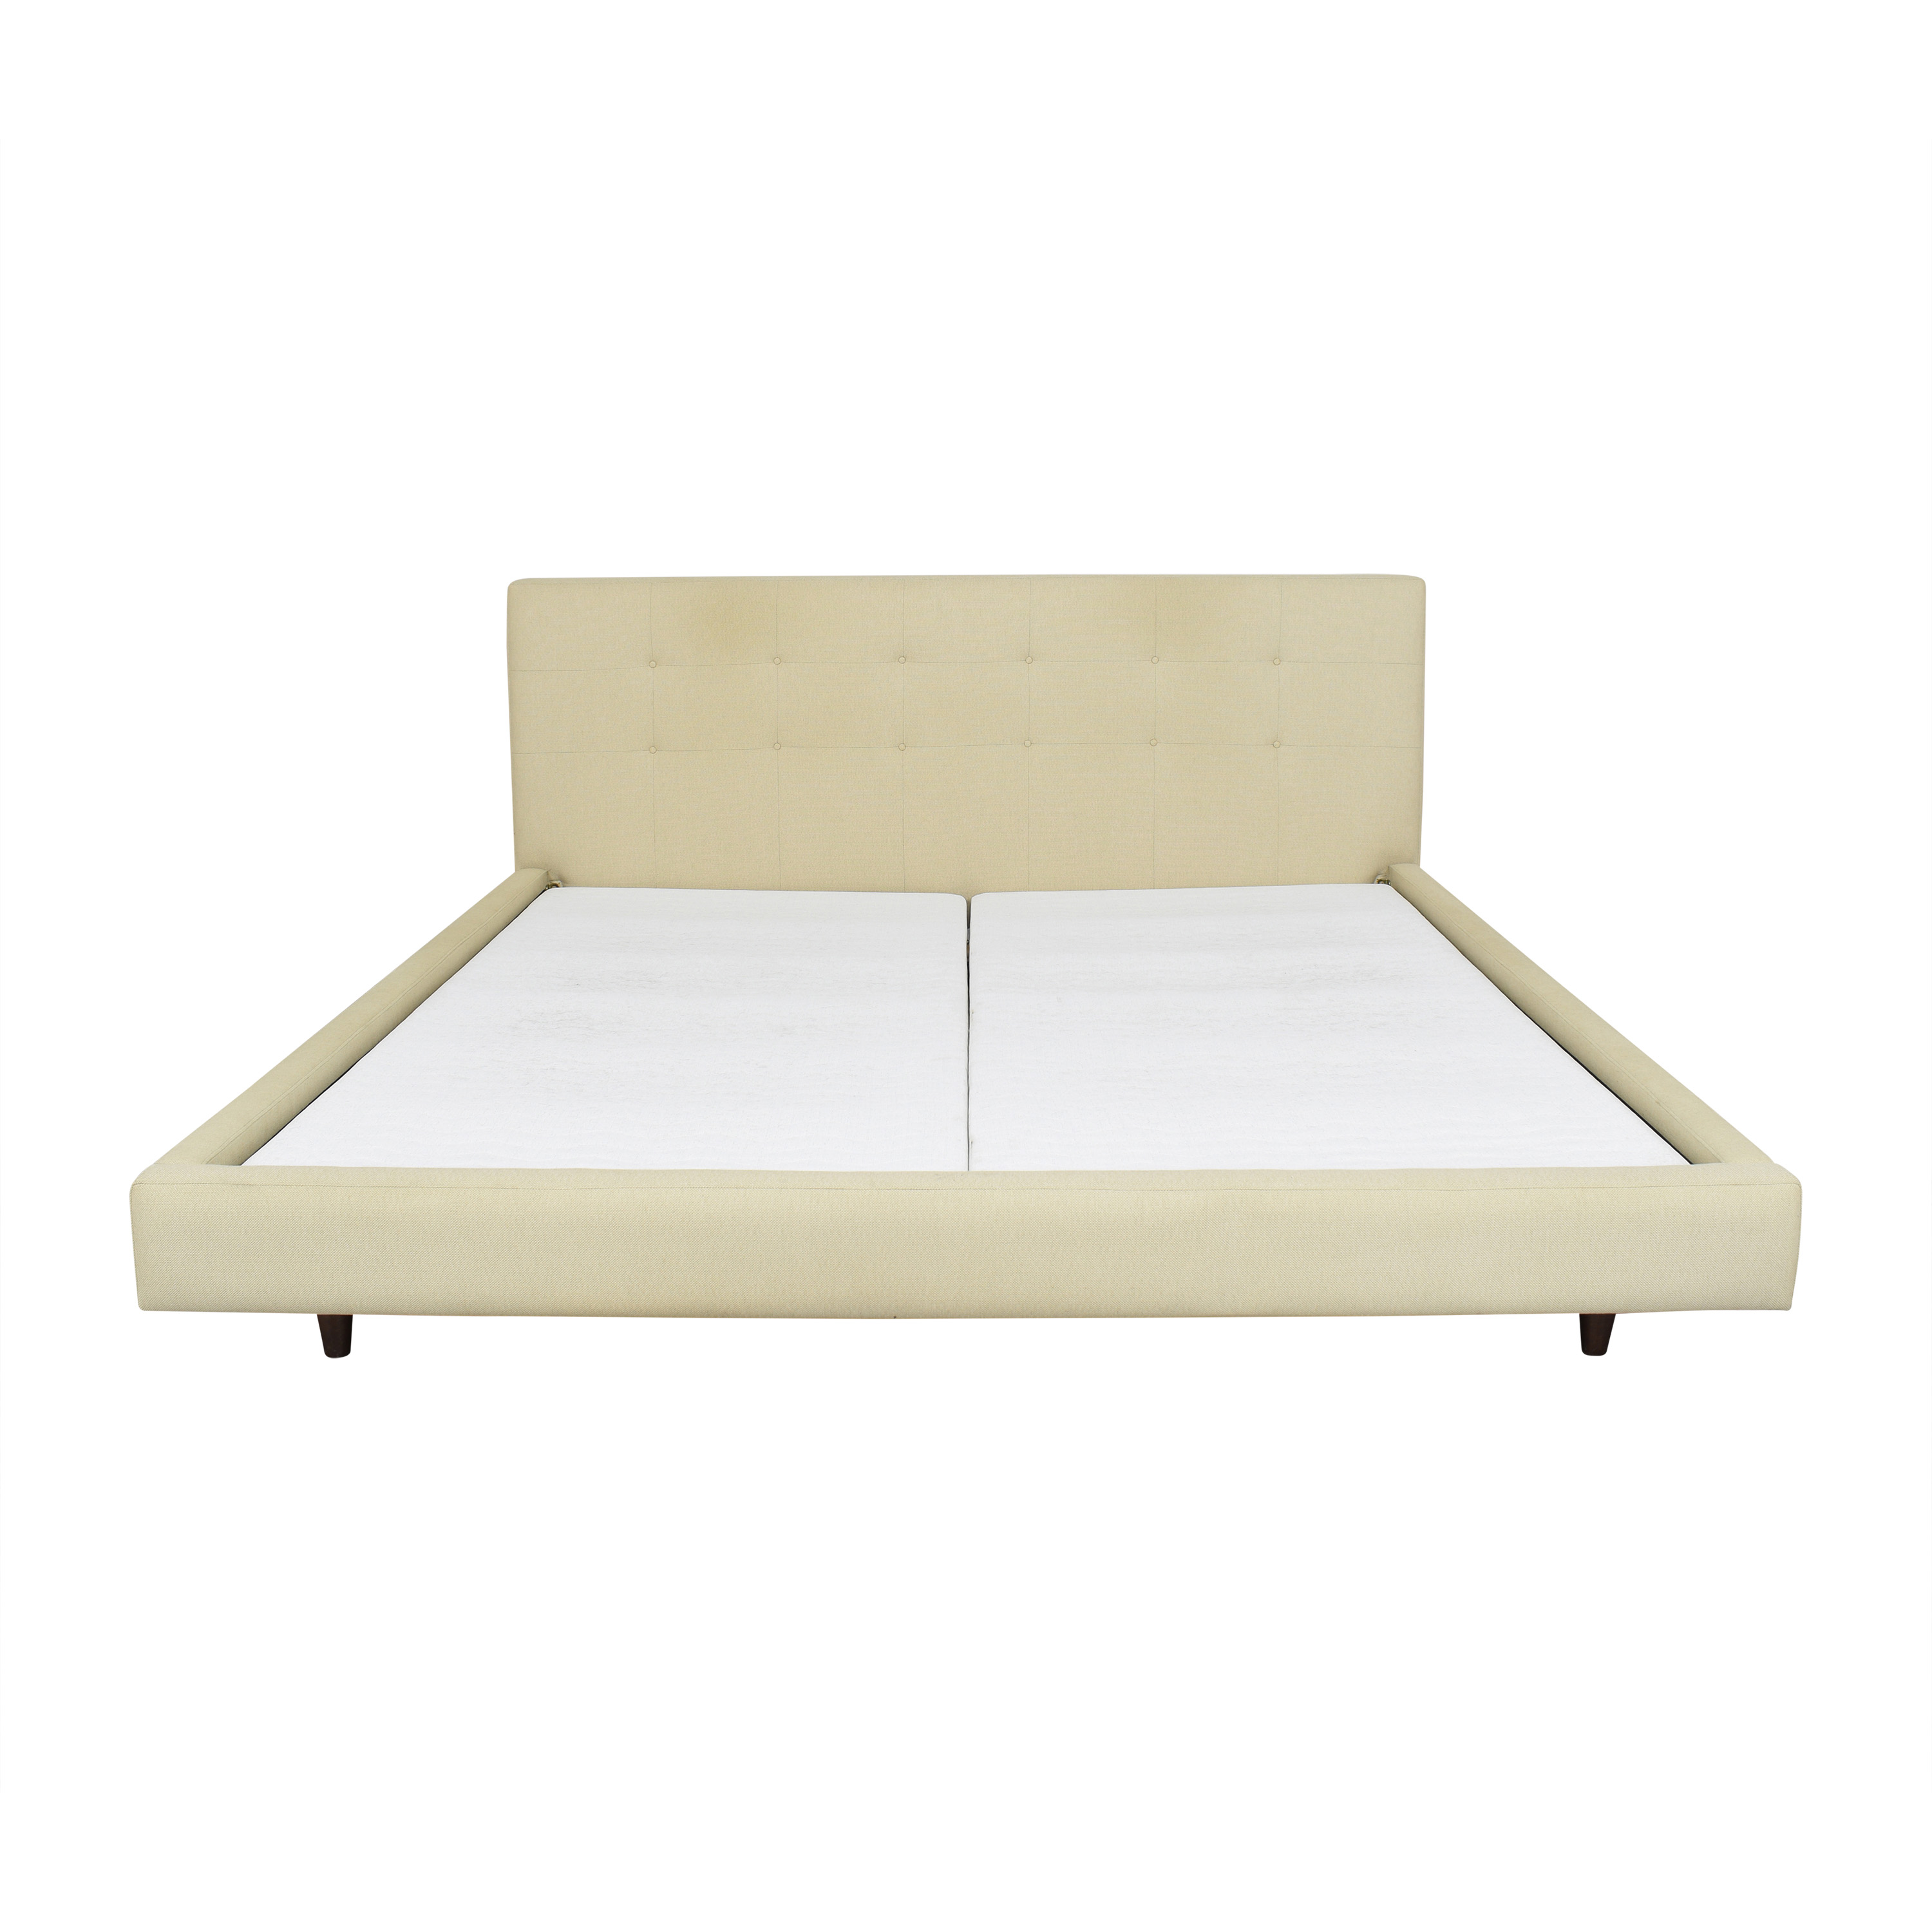 shop Crate & Barrel Tate Upholstered King Bed Crate & Barrel Bed Frames